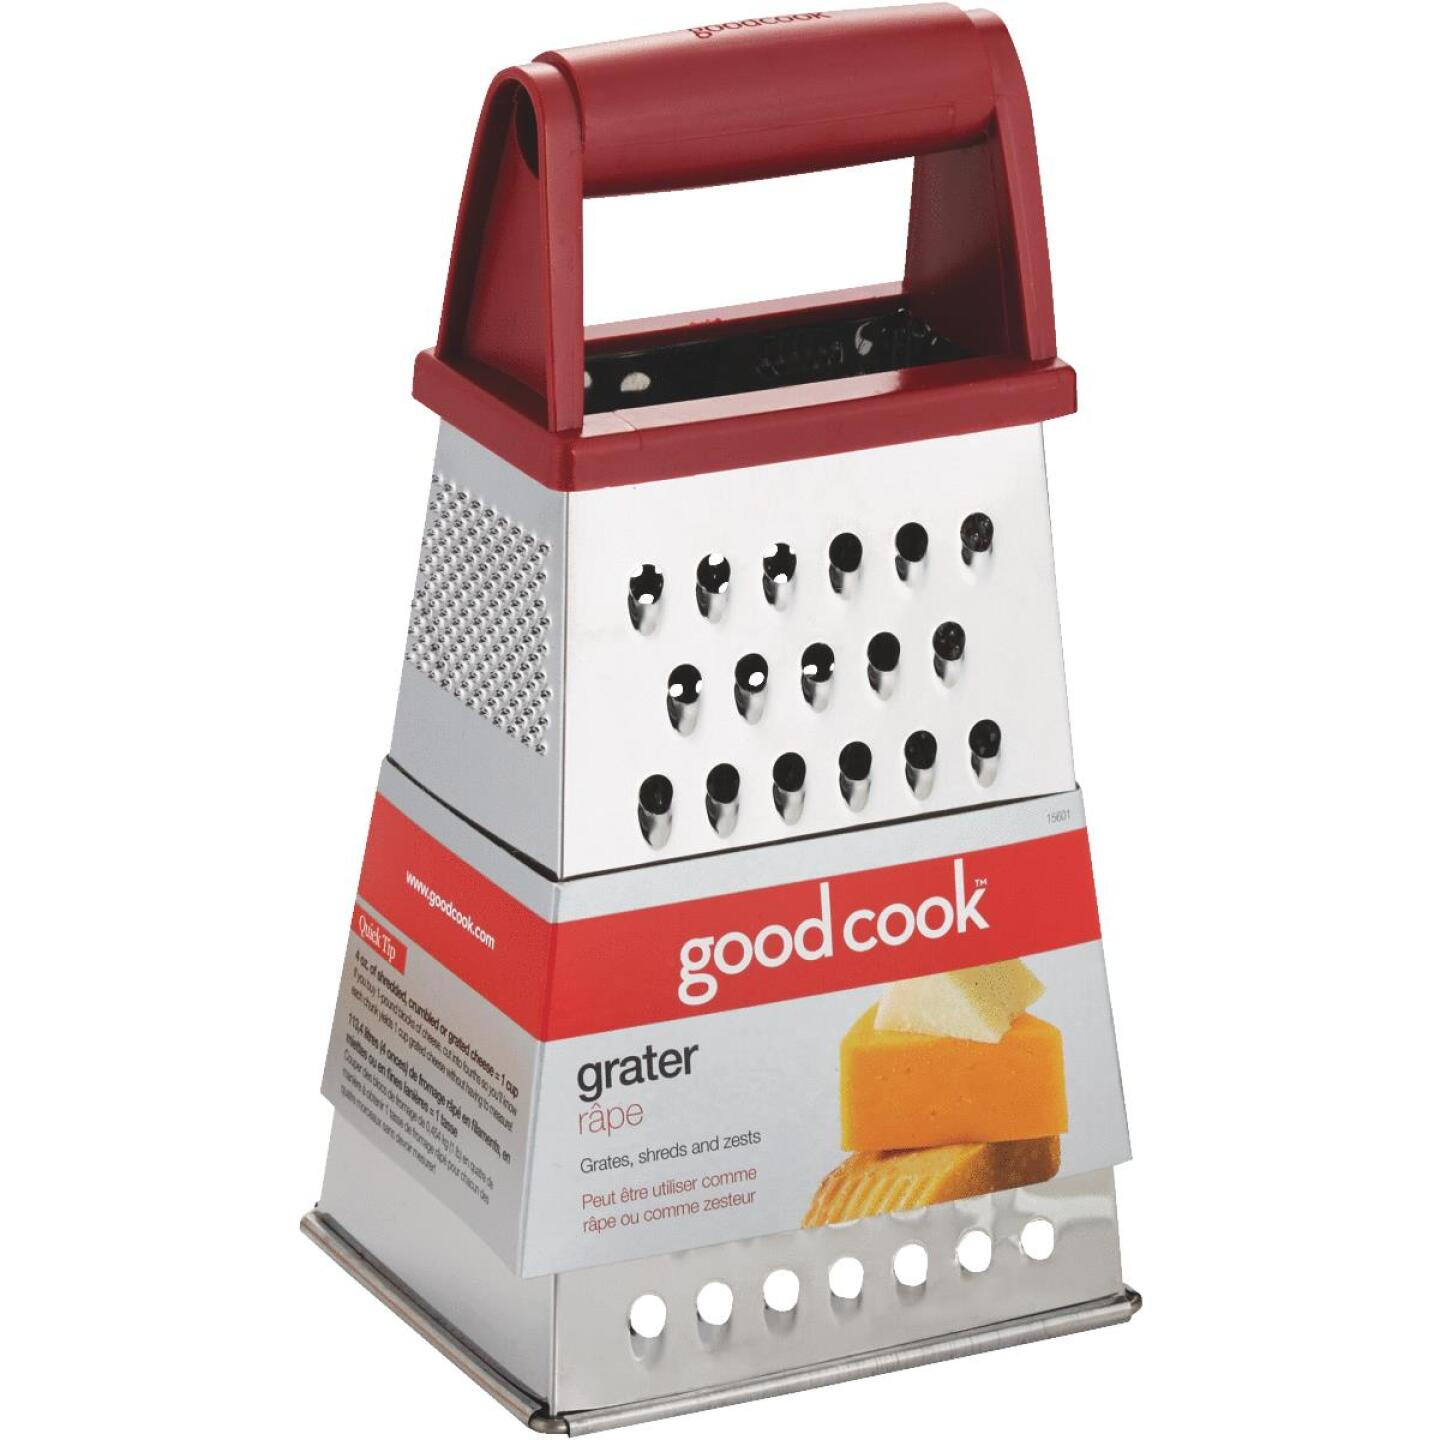 Goodcook 4-Sided Stainless Steel Grater Image 1